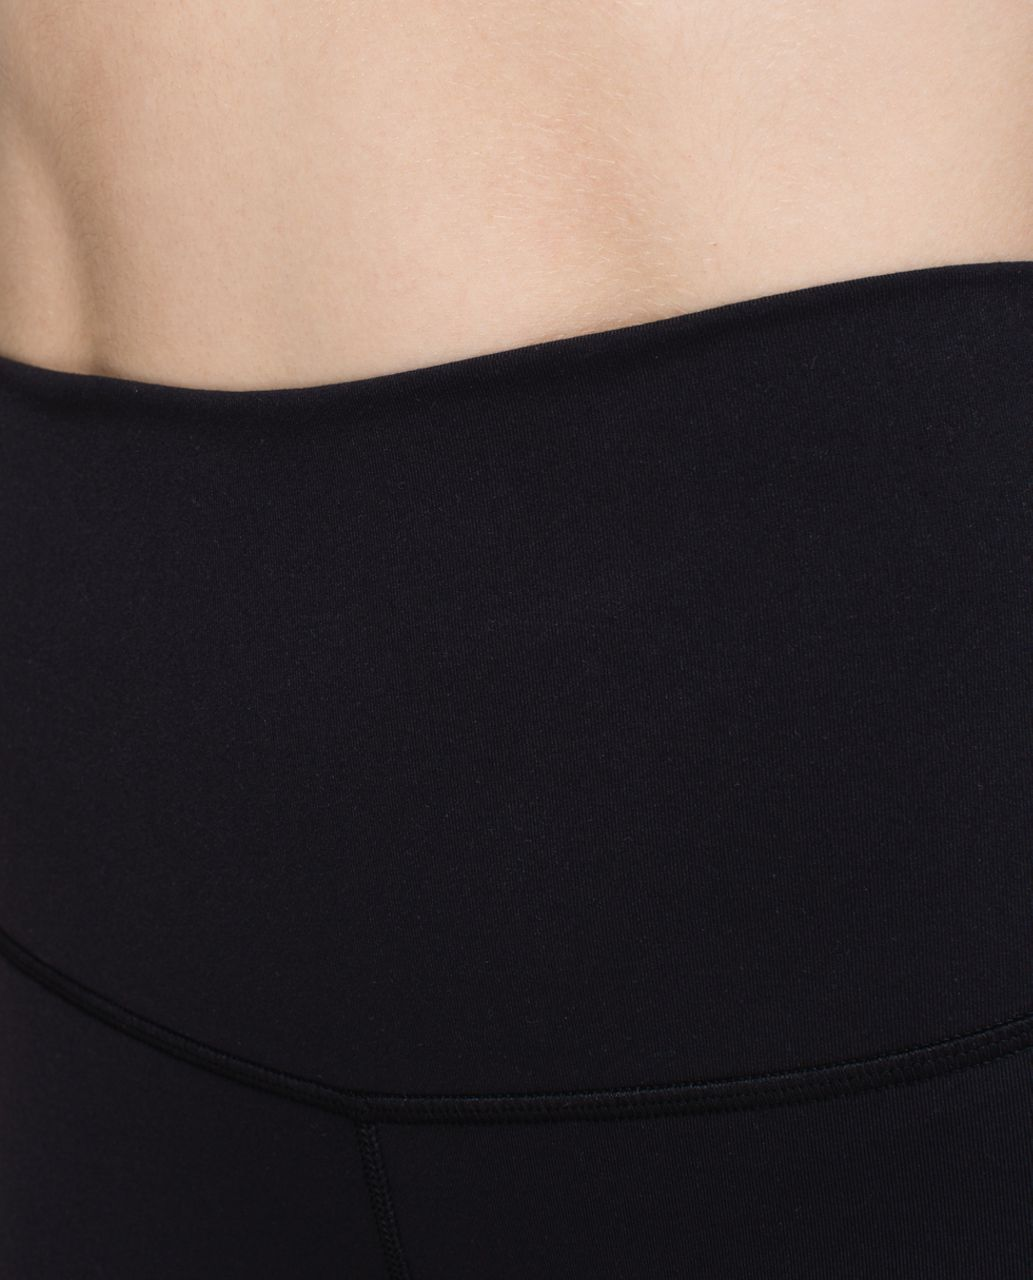 Lululemon Wunder Under Crop (Roll Down) *Full-On Luon - Black